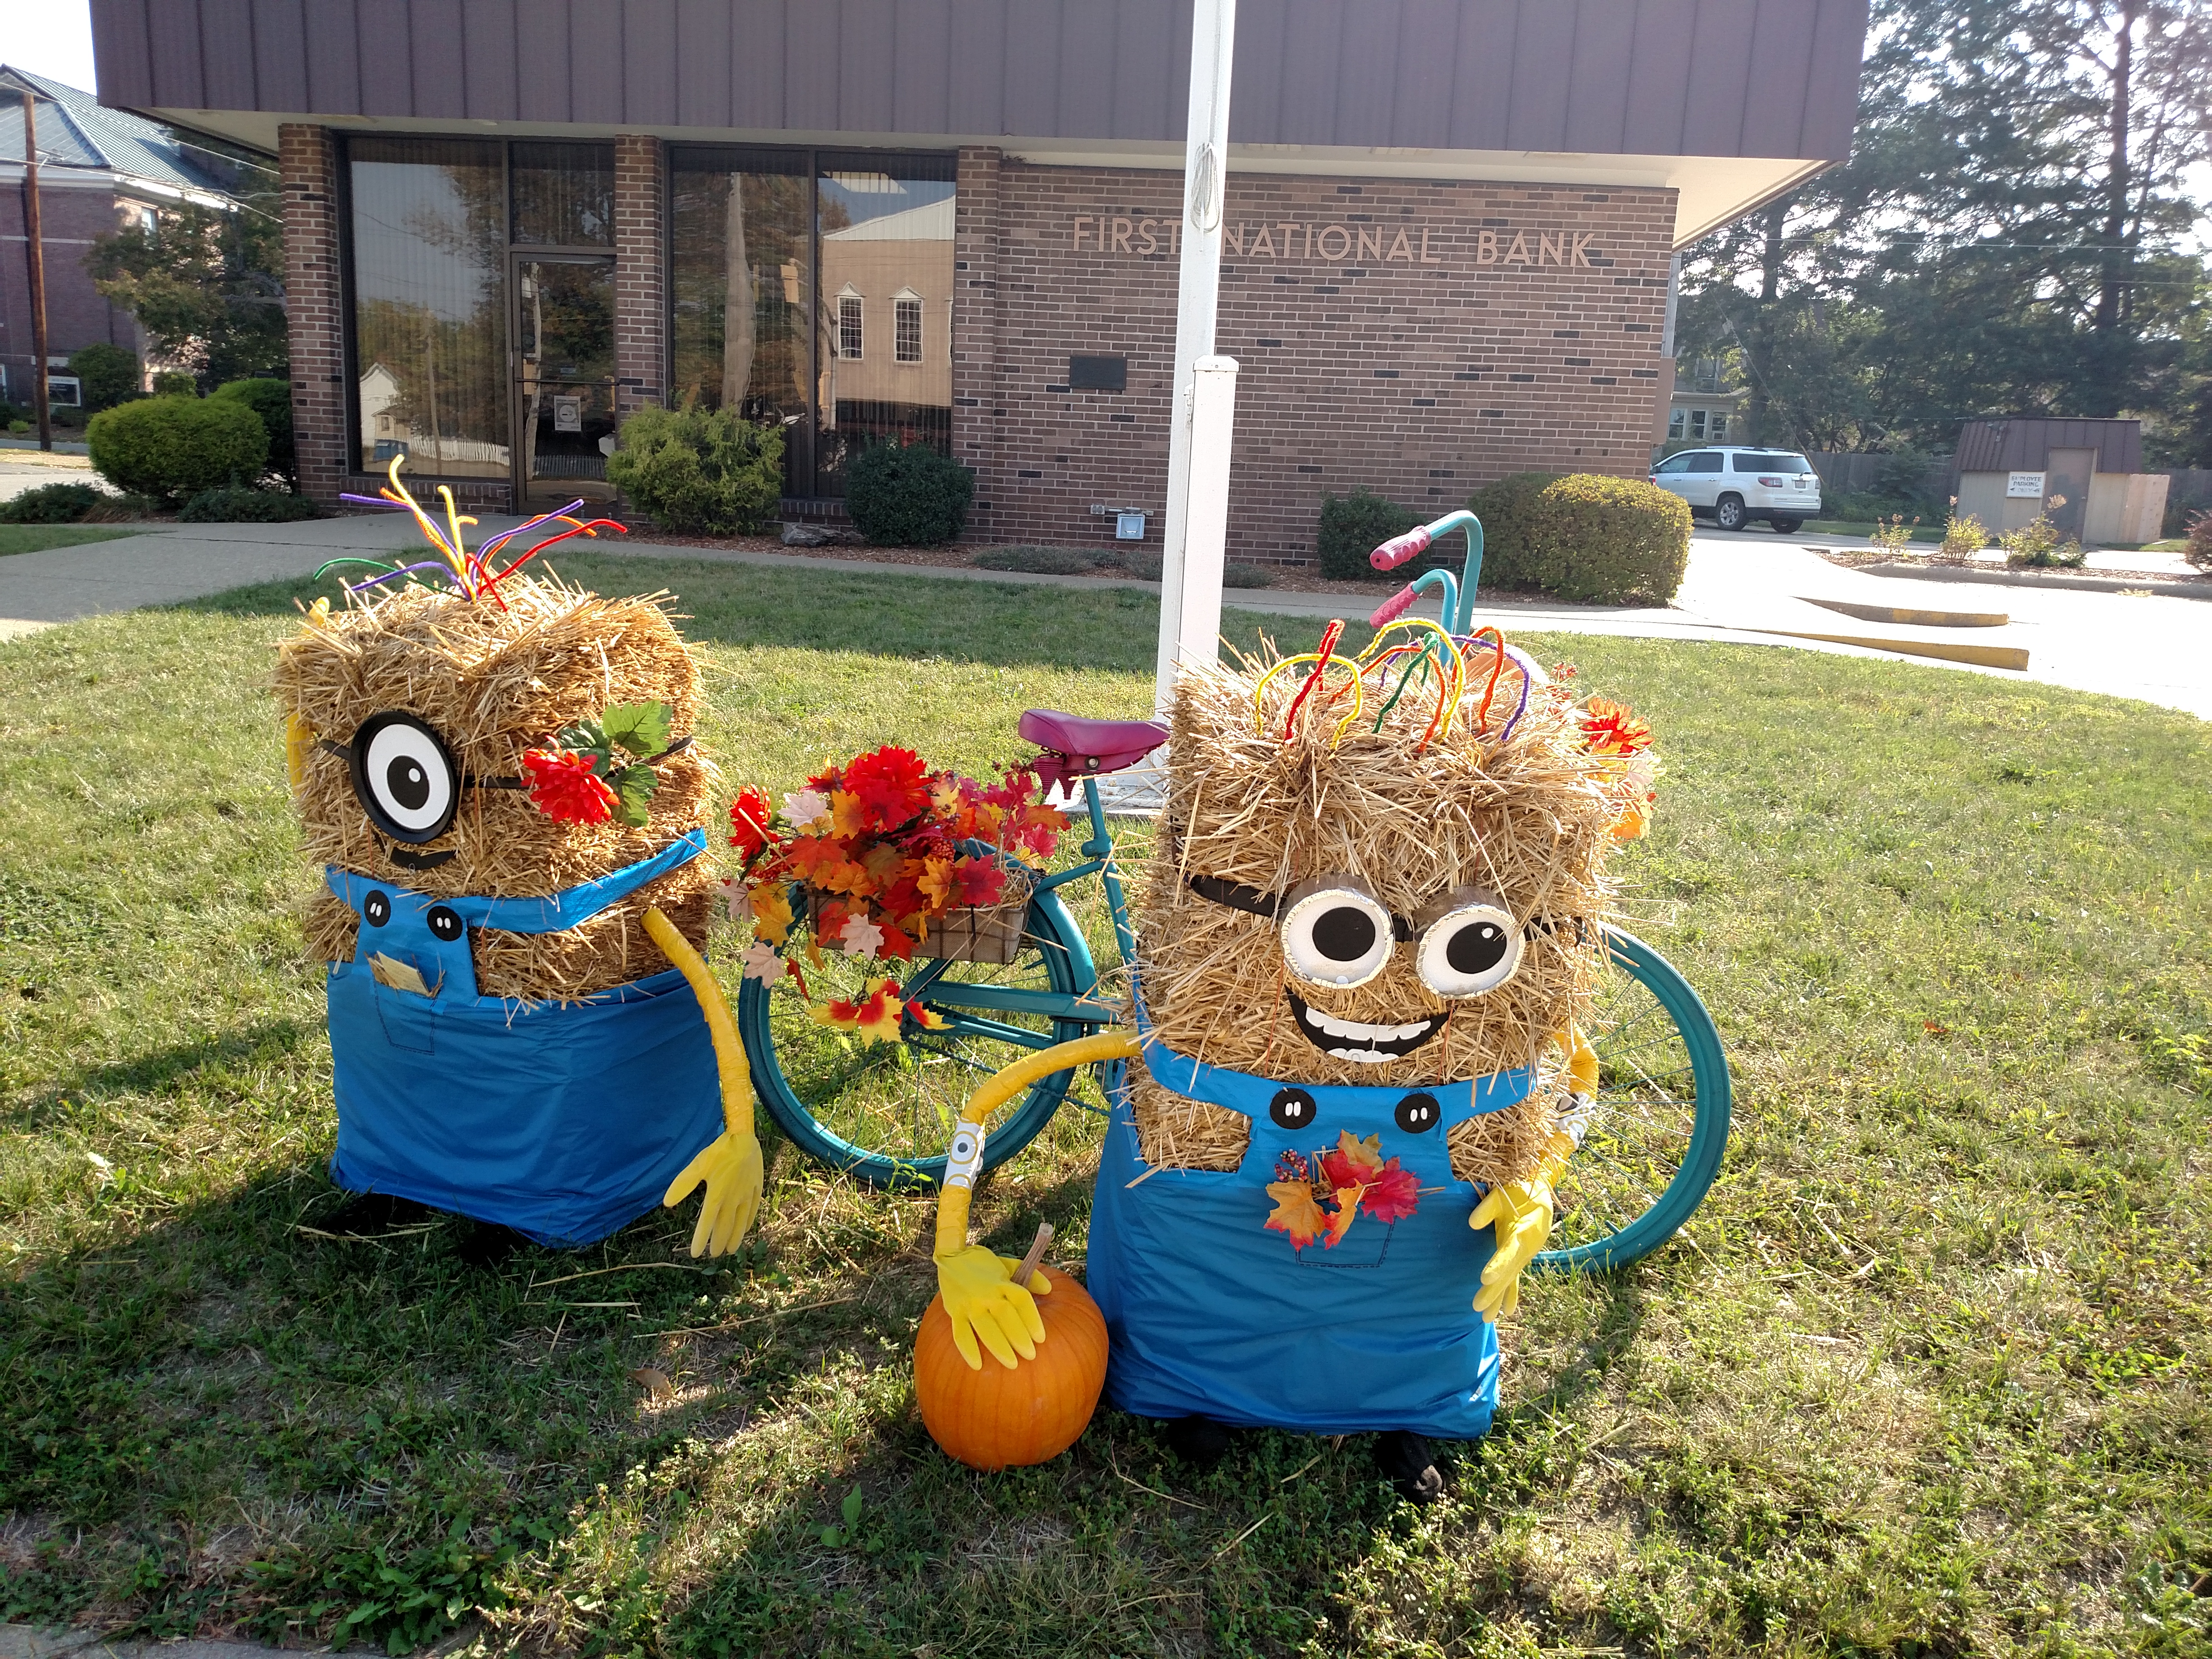 Minion scarecrows at whittle ave facility.